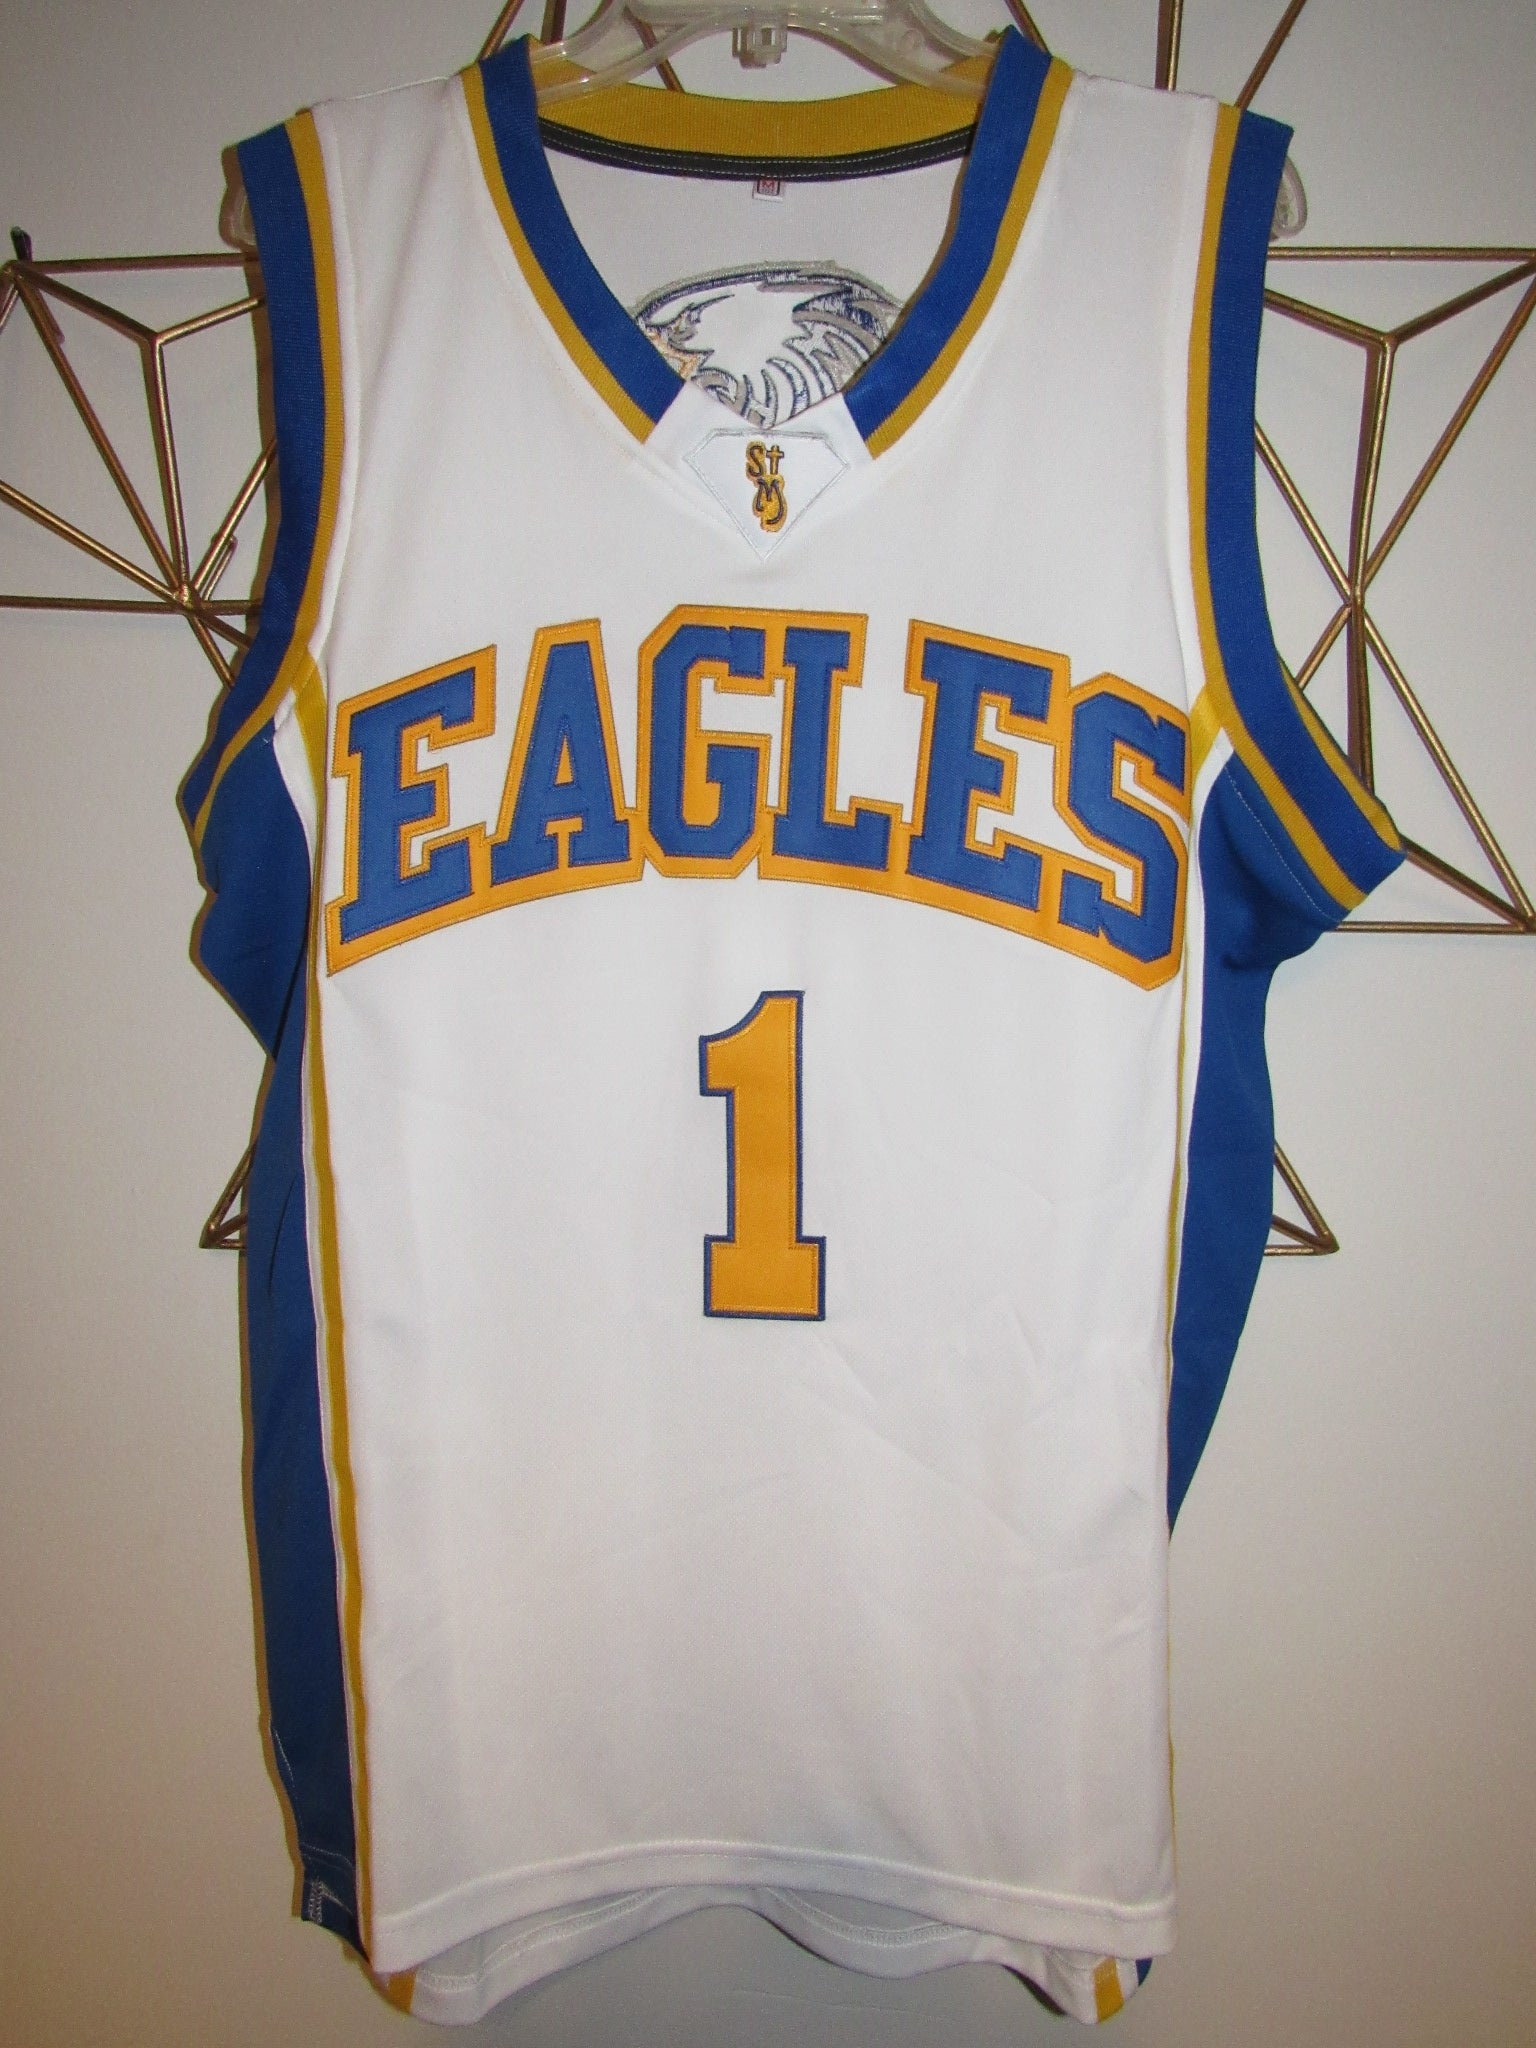 new style 28e3f 34065 Klay Thompson Eagles High School Basketball Jersey (Home ...